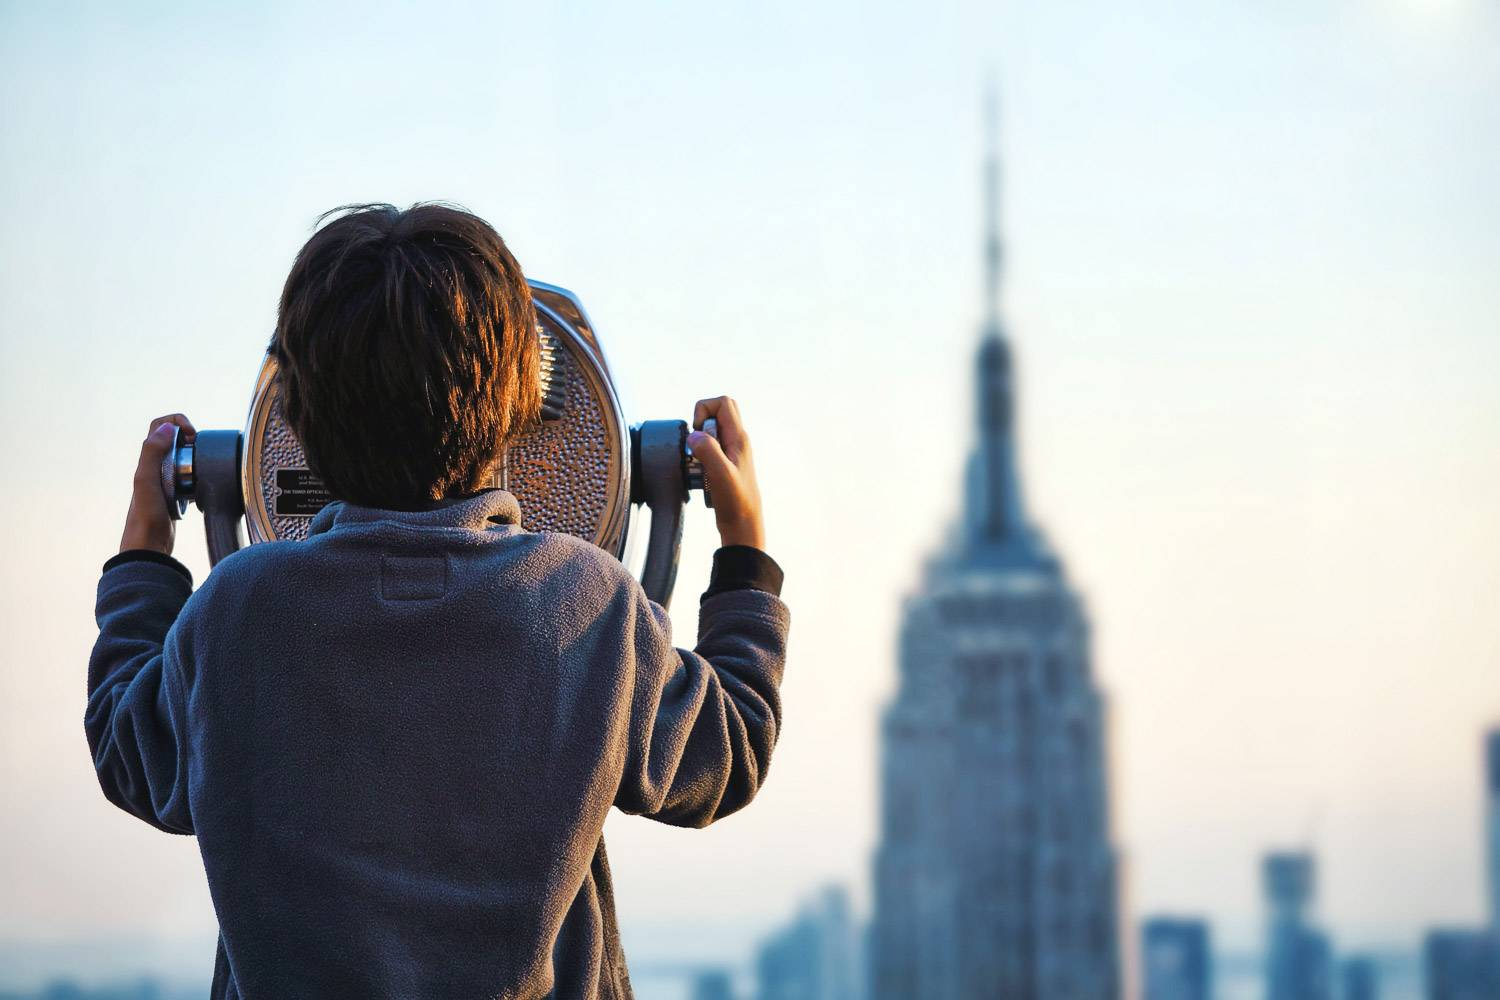 Immagine di un bambino che guarda dal telescopio all'Empire State Building (Photo credit: Unsplash)